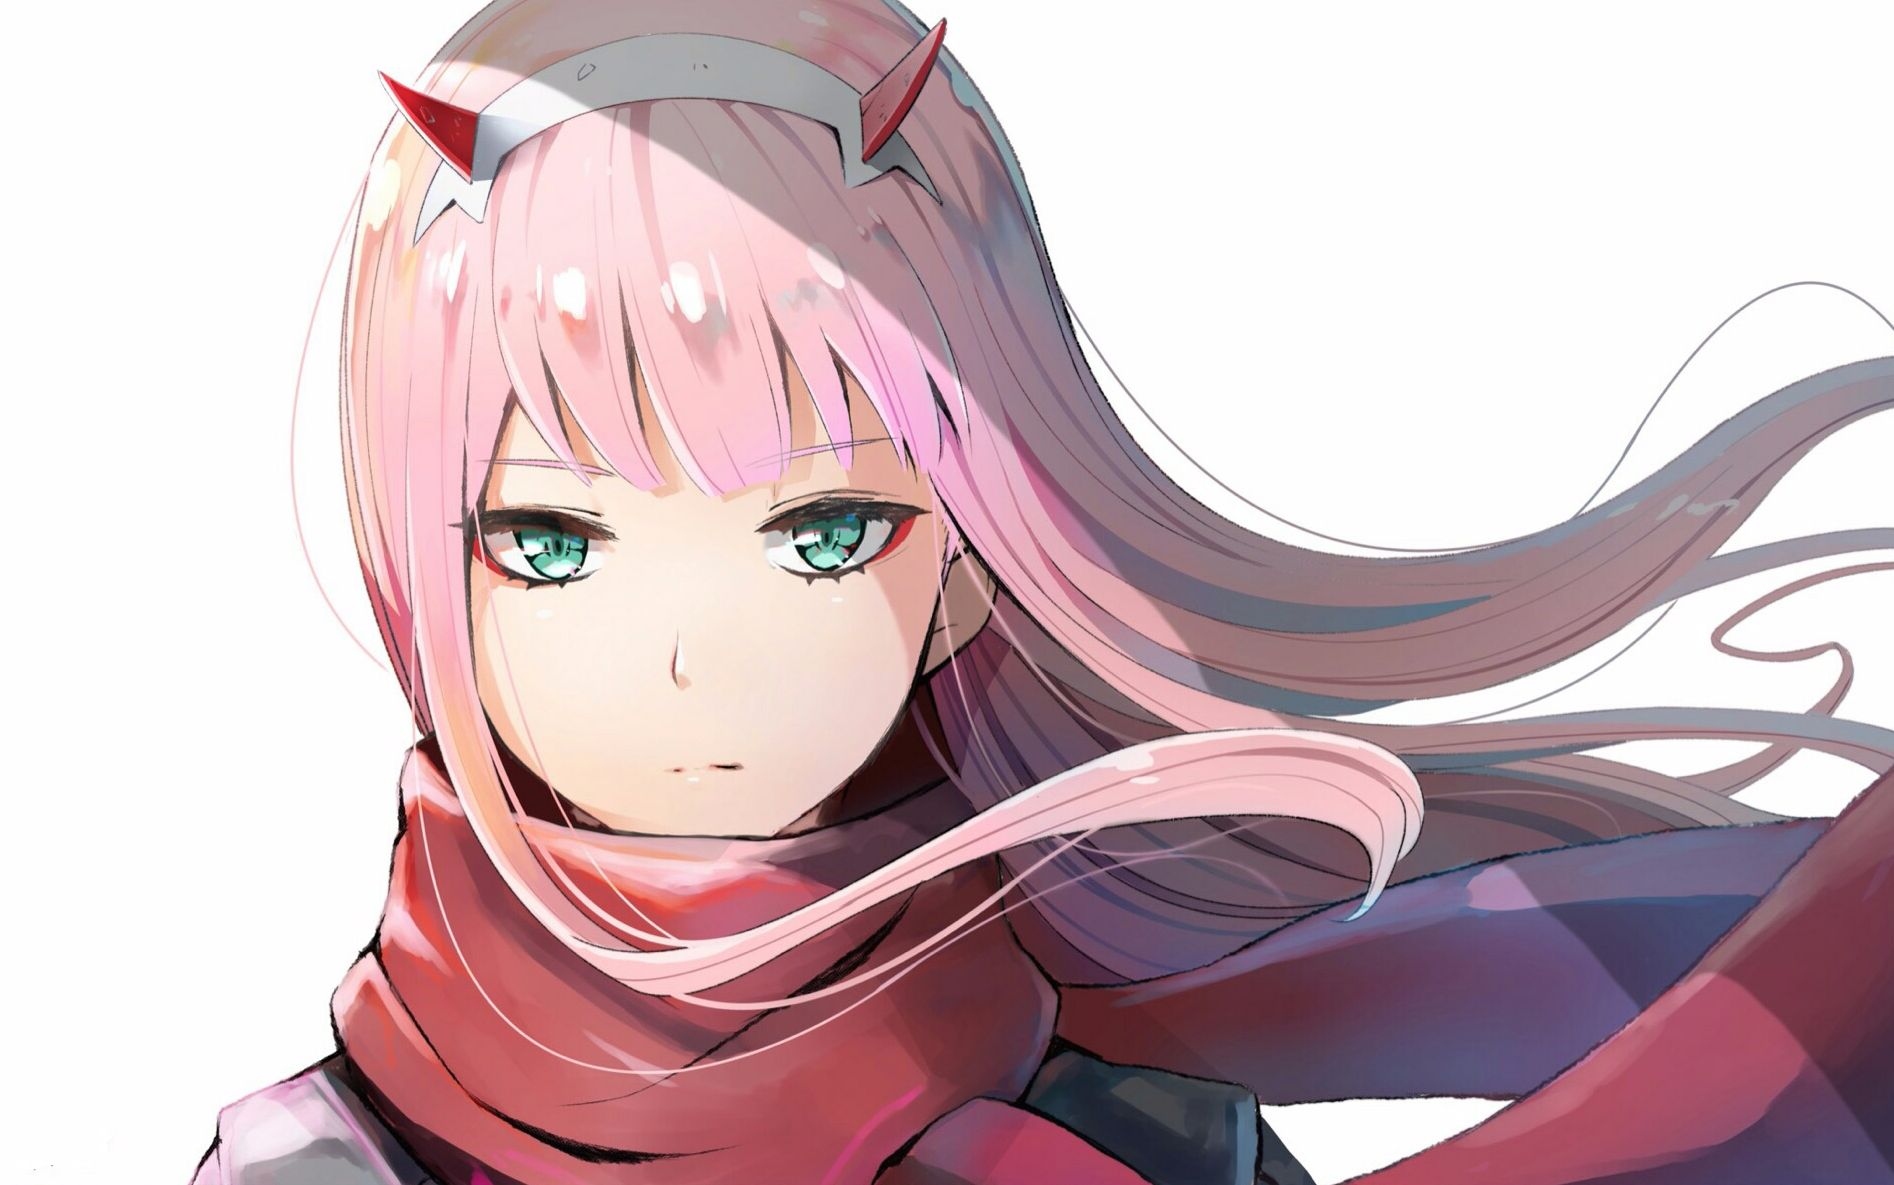 Darling in the franxx 02hdlegendado br - 2 3